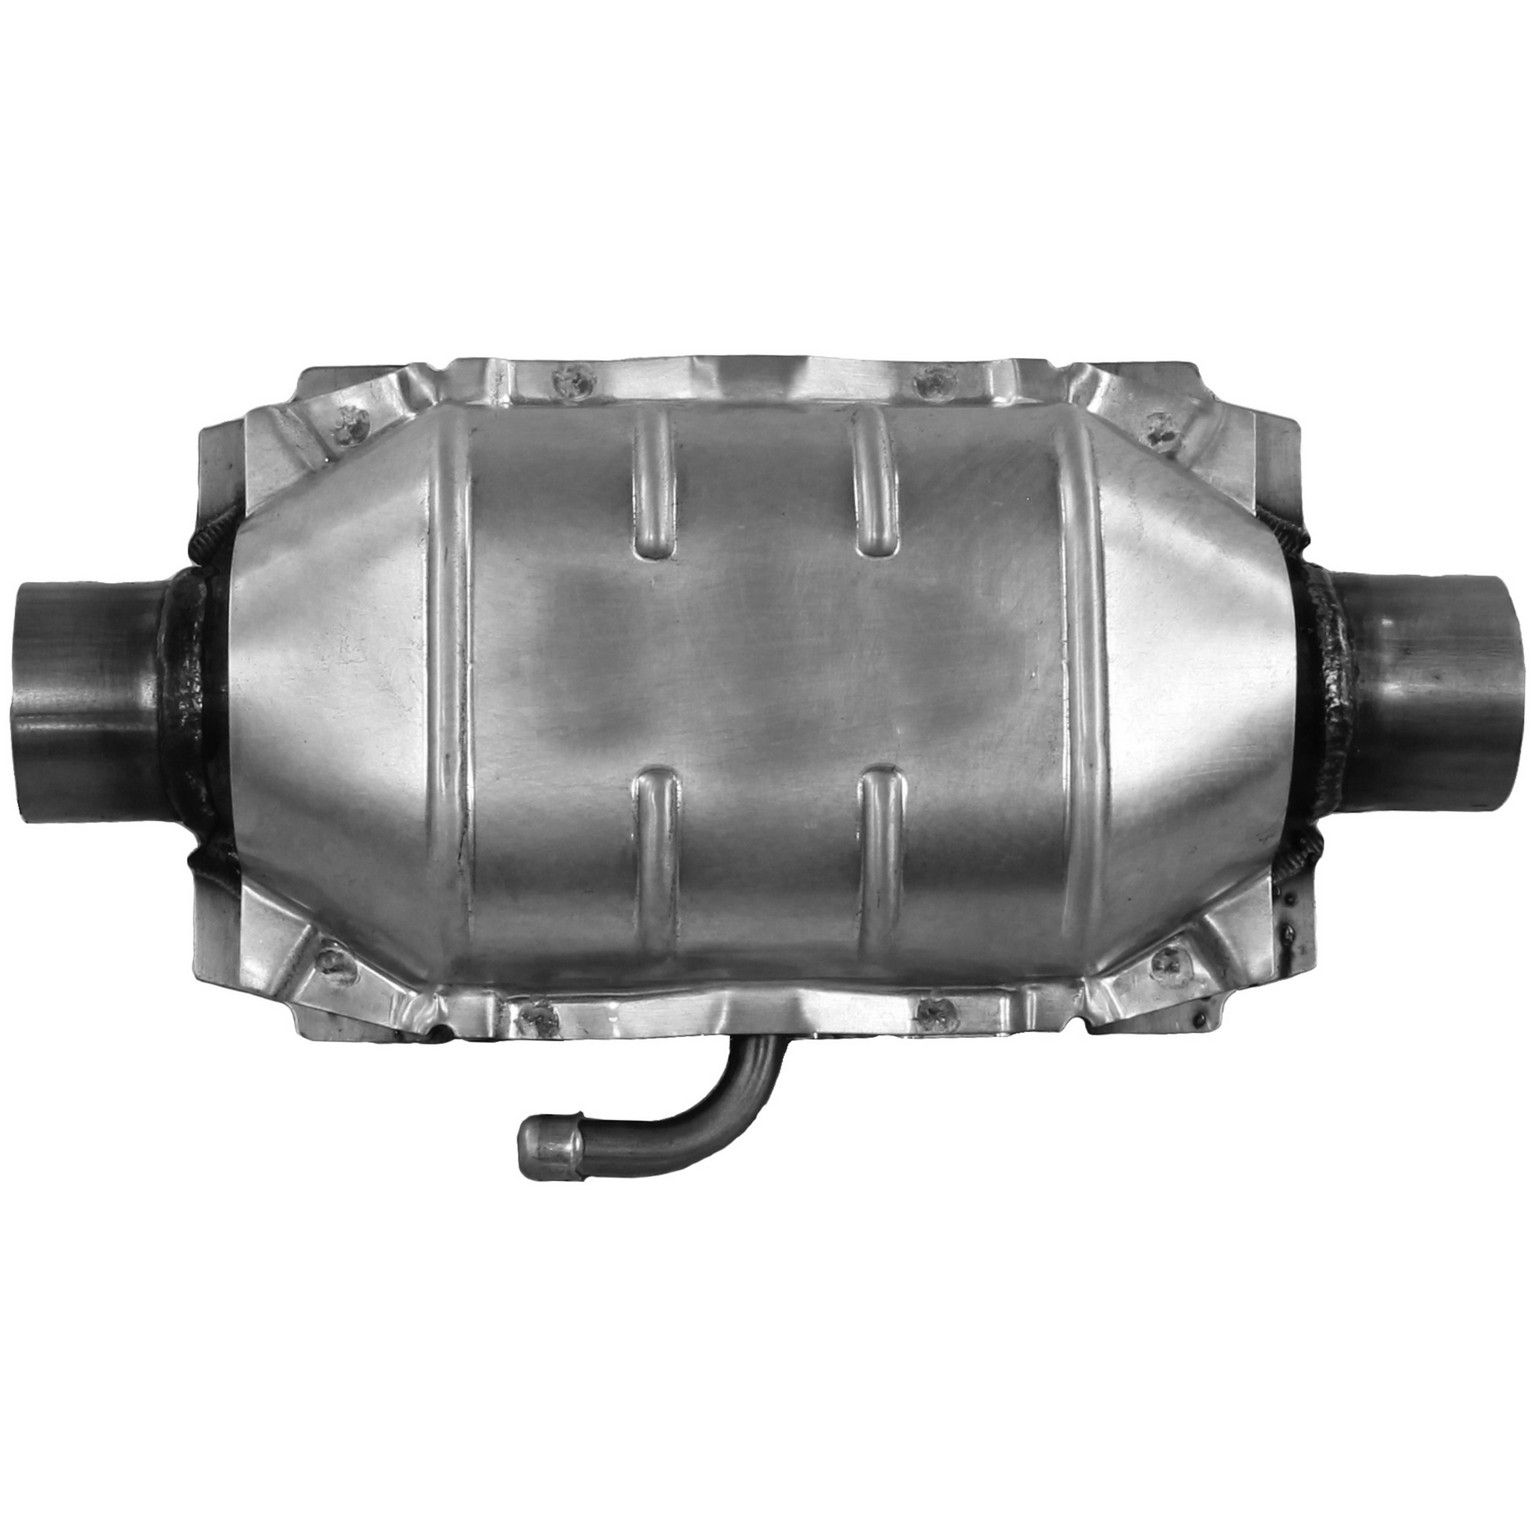 1981 Lincoln Town Car Catalytic Converter Left 8 Cyl 50l Walker 15031 With Air Tube May Require 35574 For Installation Fits Fed Calif Emiss: 2005 Lincoln Town Car Catalytic Converter At Woreks.co